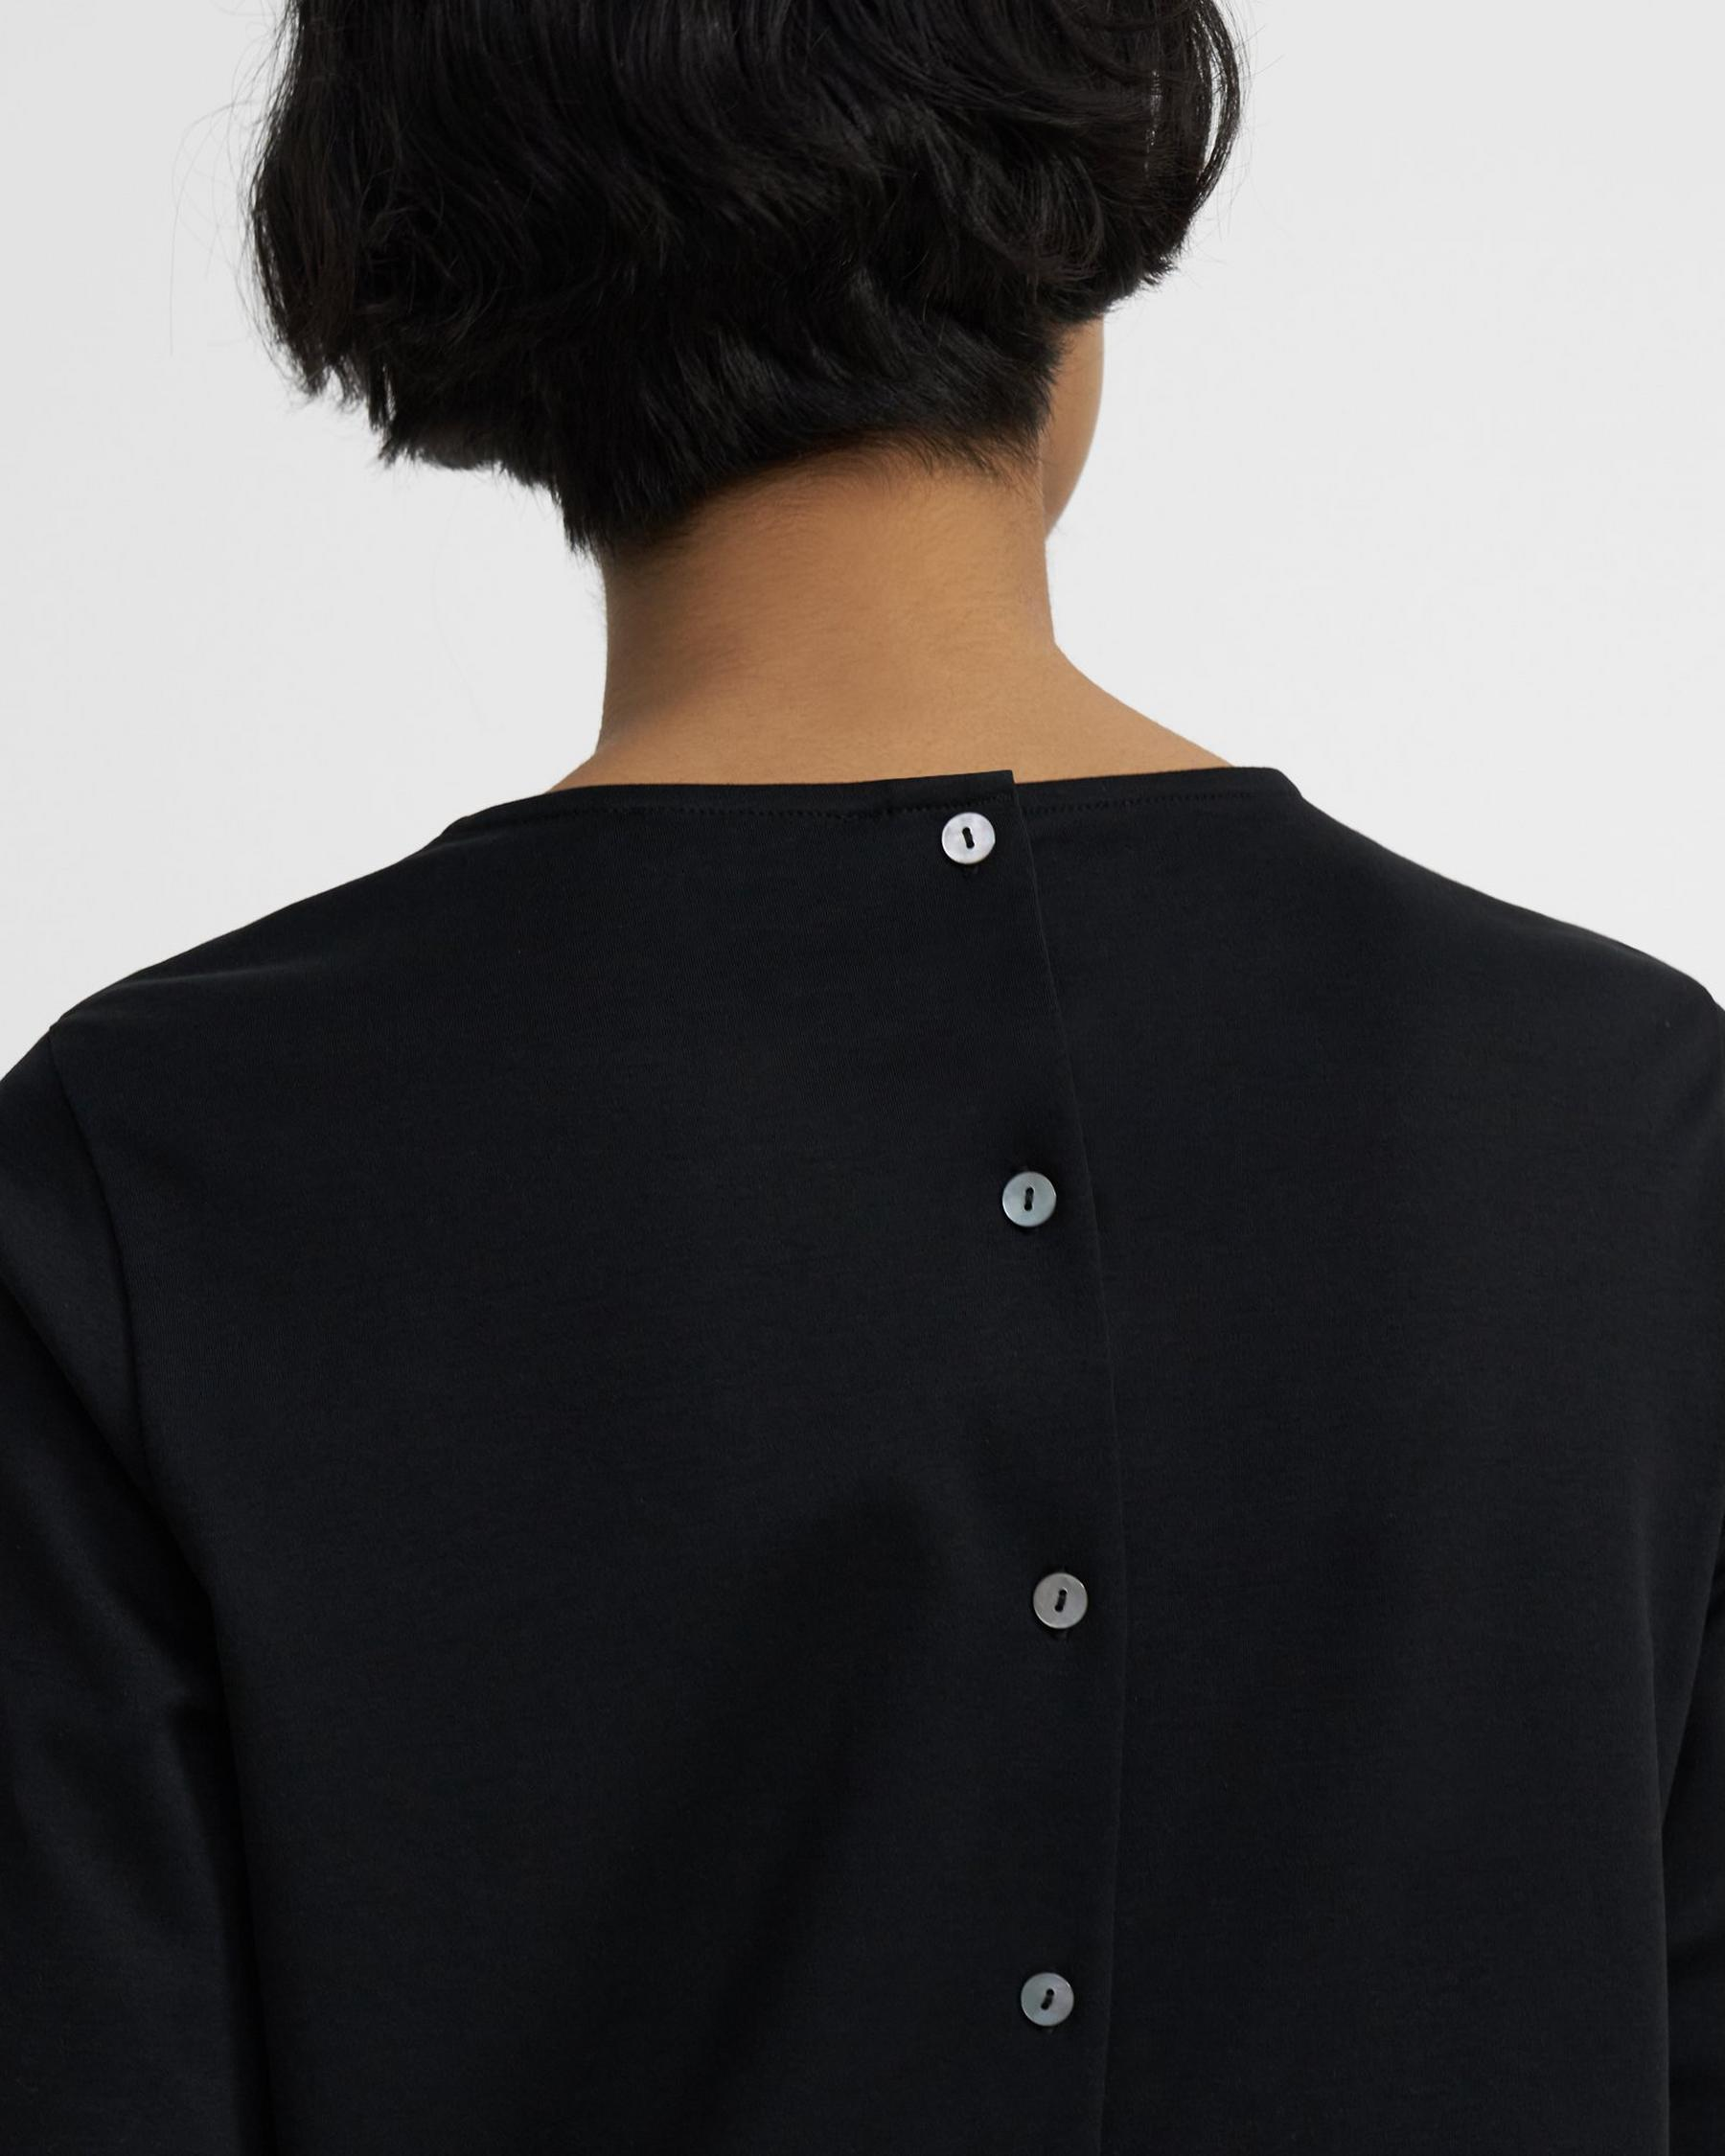 Square Tee in Cotton Jersey 3